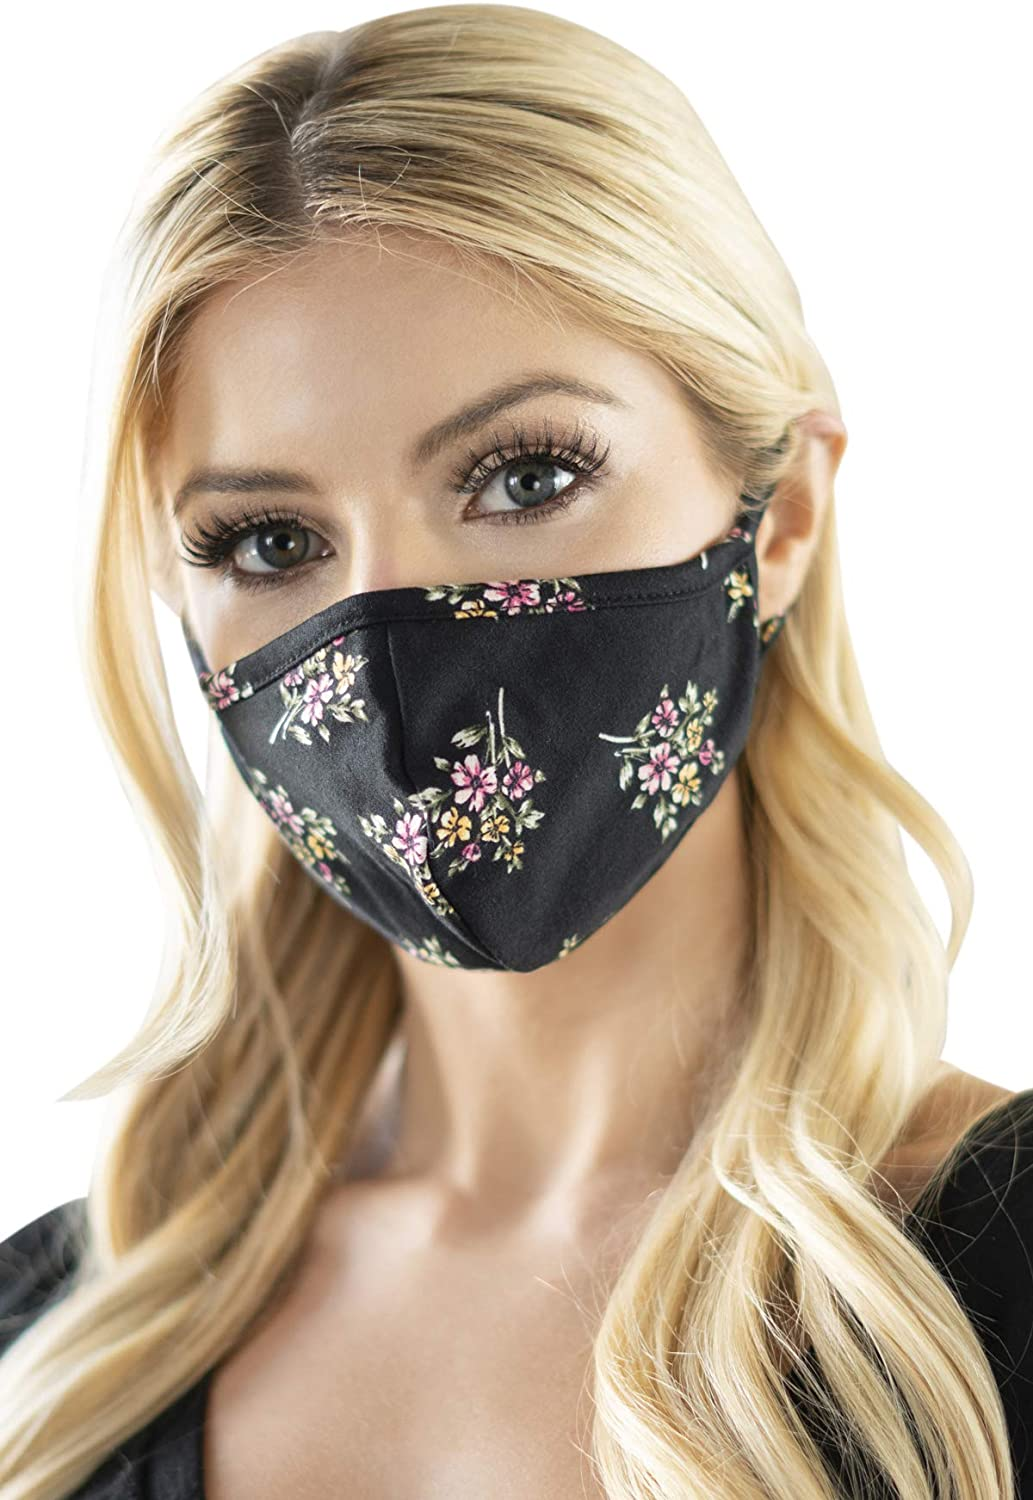 Reusable Fabric Face Mask Covering Unisex - Cute Print Cloth Comfy Washable Breathable Outdoor Mouth Shield Protection Men Women (Pointy/Ear Loop - Floral Bouquet Black)